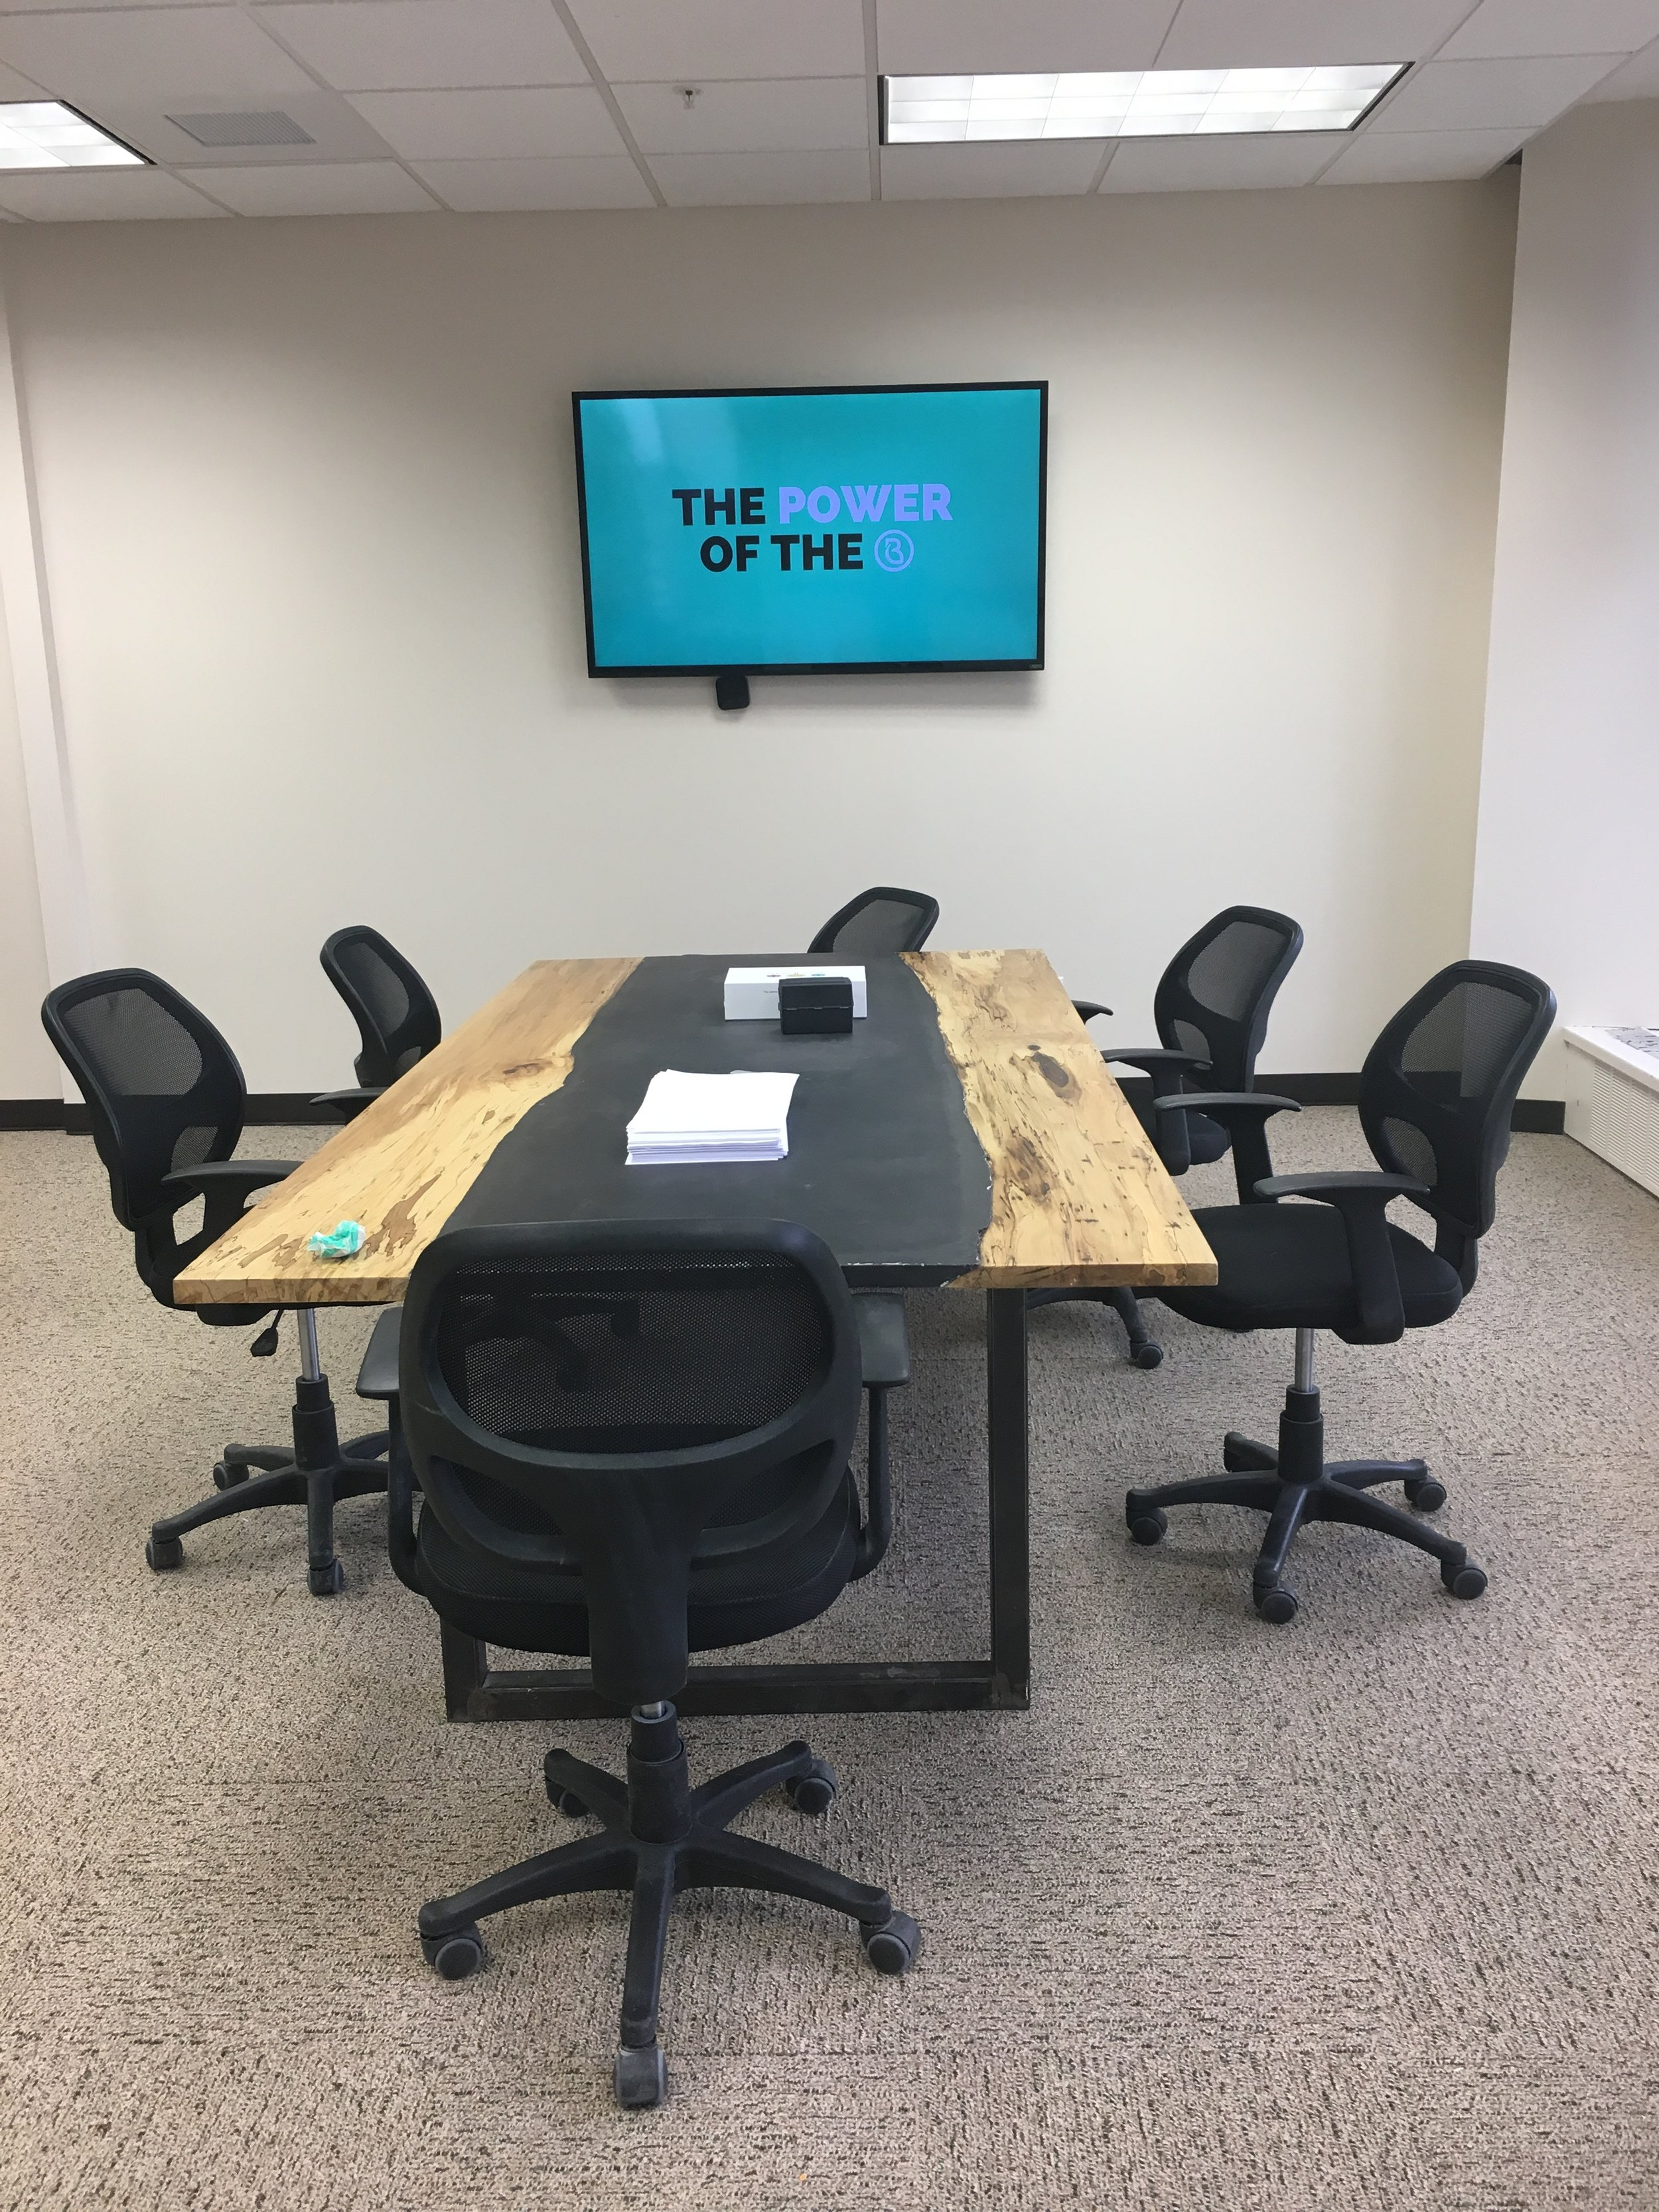 Office Photo of conference room